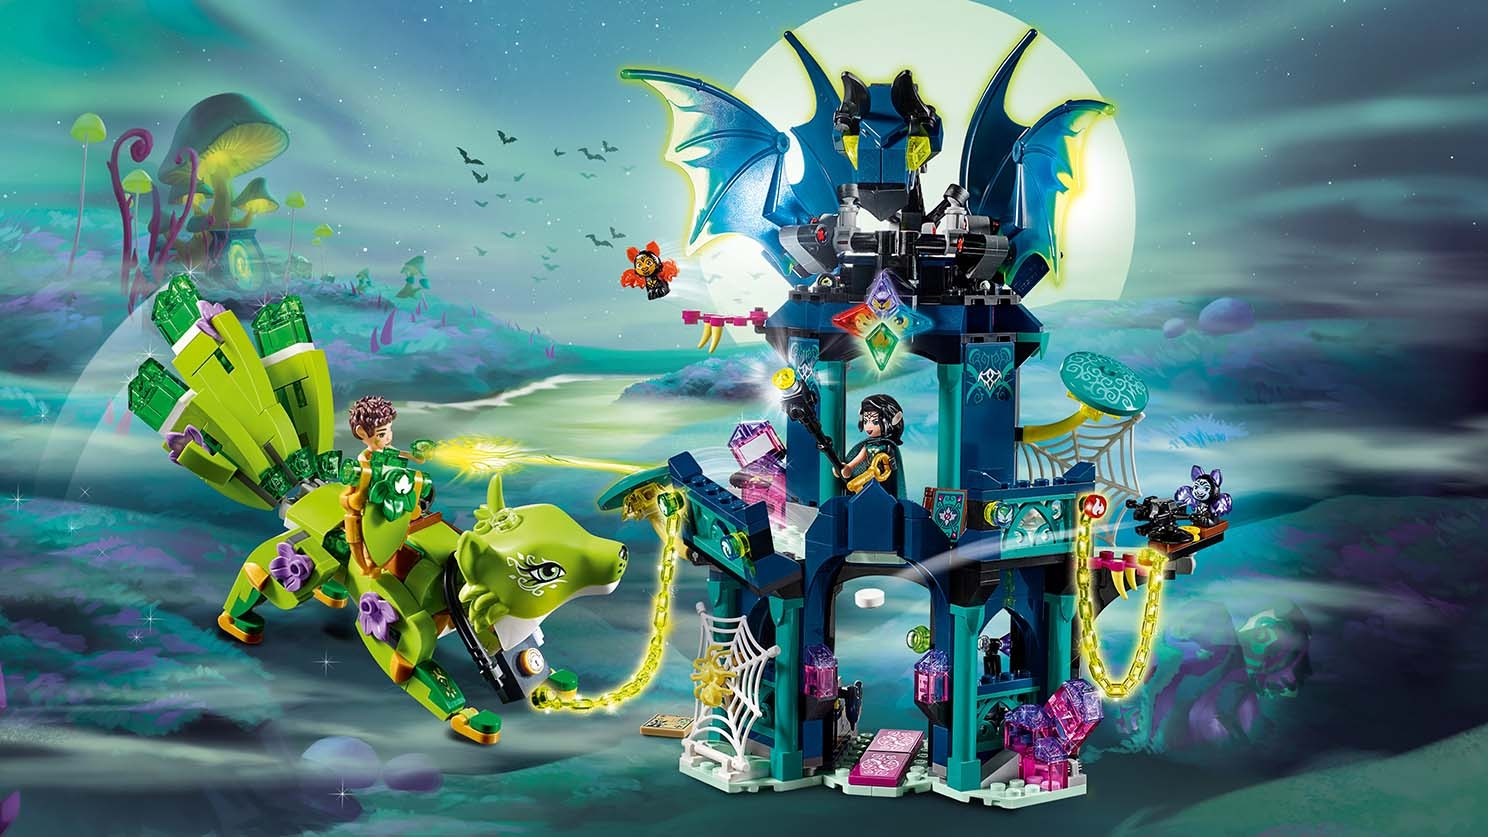 LEGO Elves - 41194 Noctura's Tower & the Earth fox Rescue - Farran is trying to rescue Liska the Guardian Earth Fox that has been captured by Noctura and chained to her Tower of Shadows.